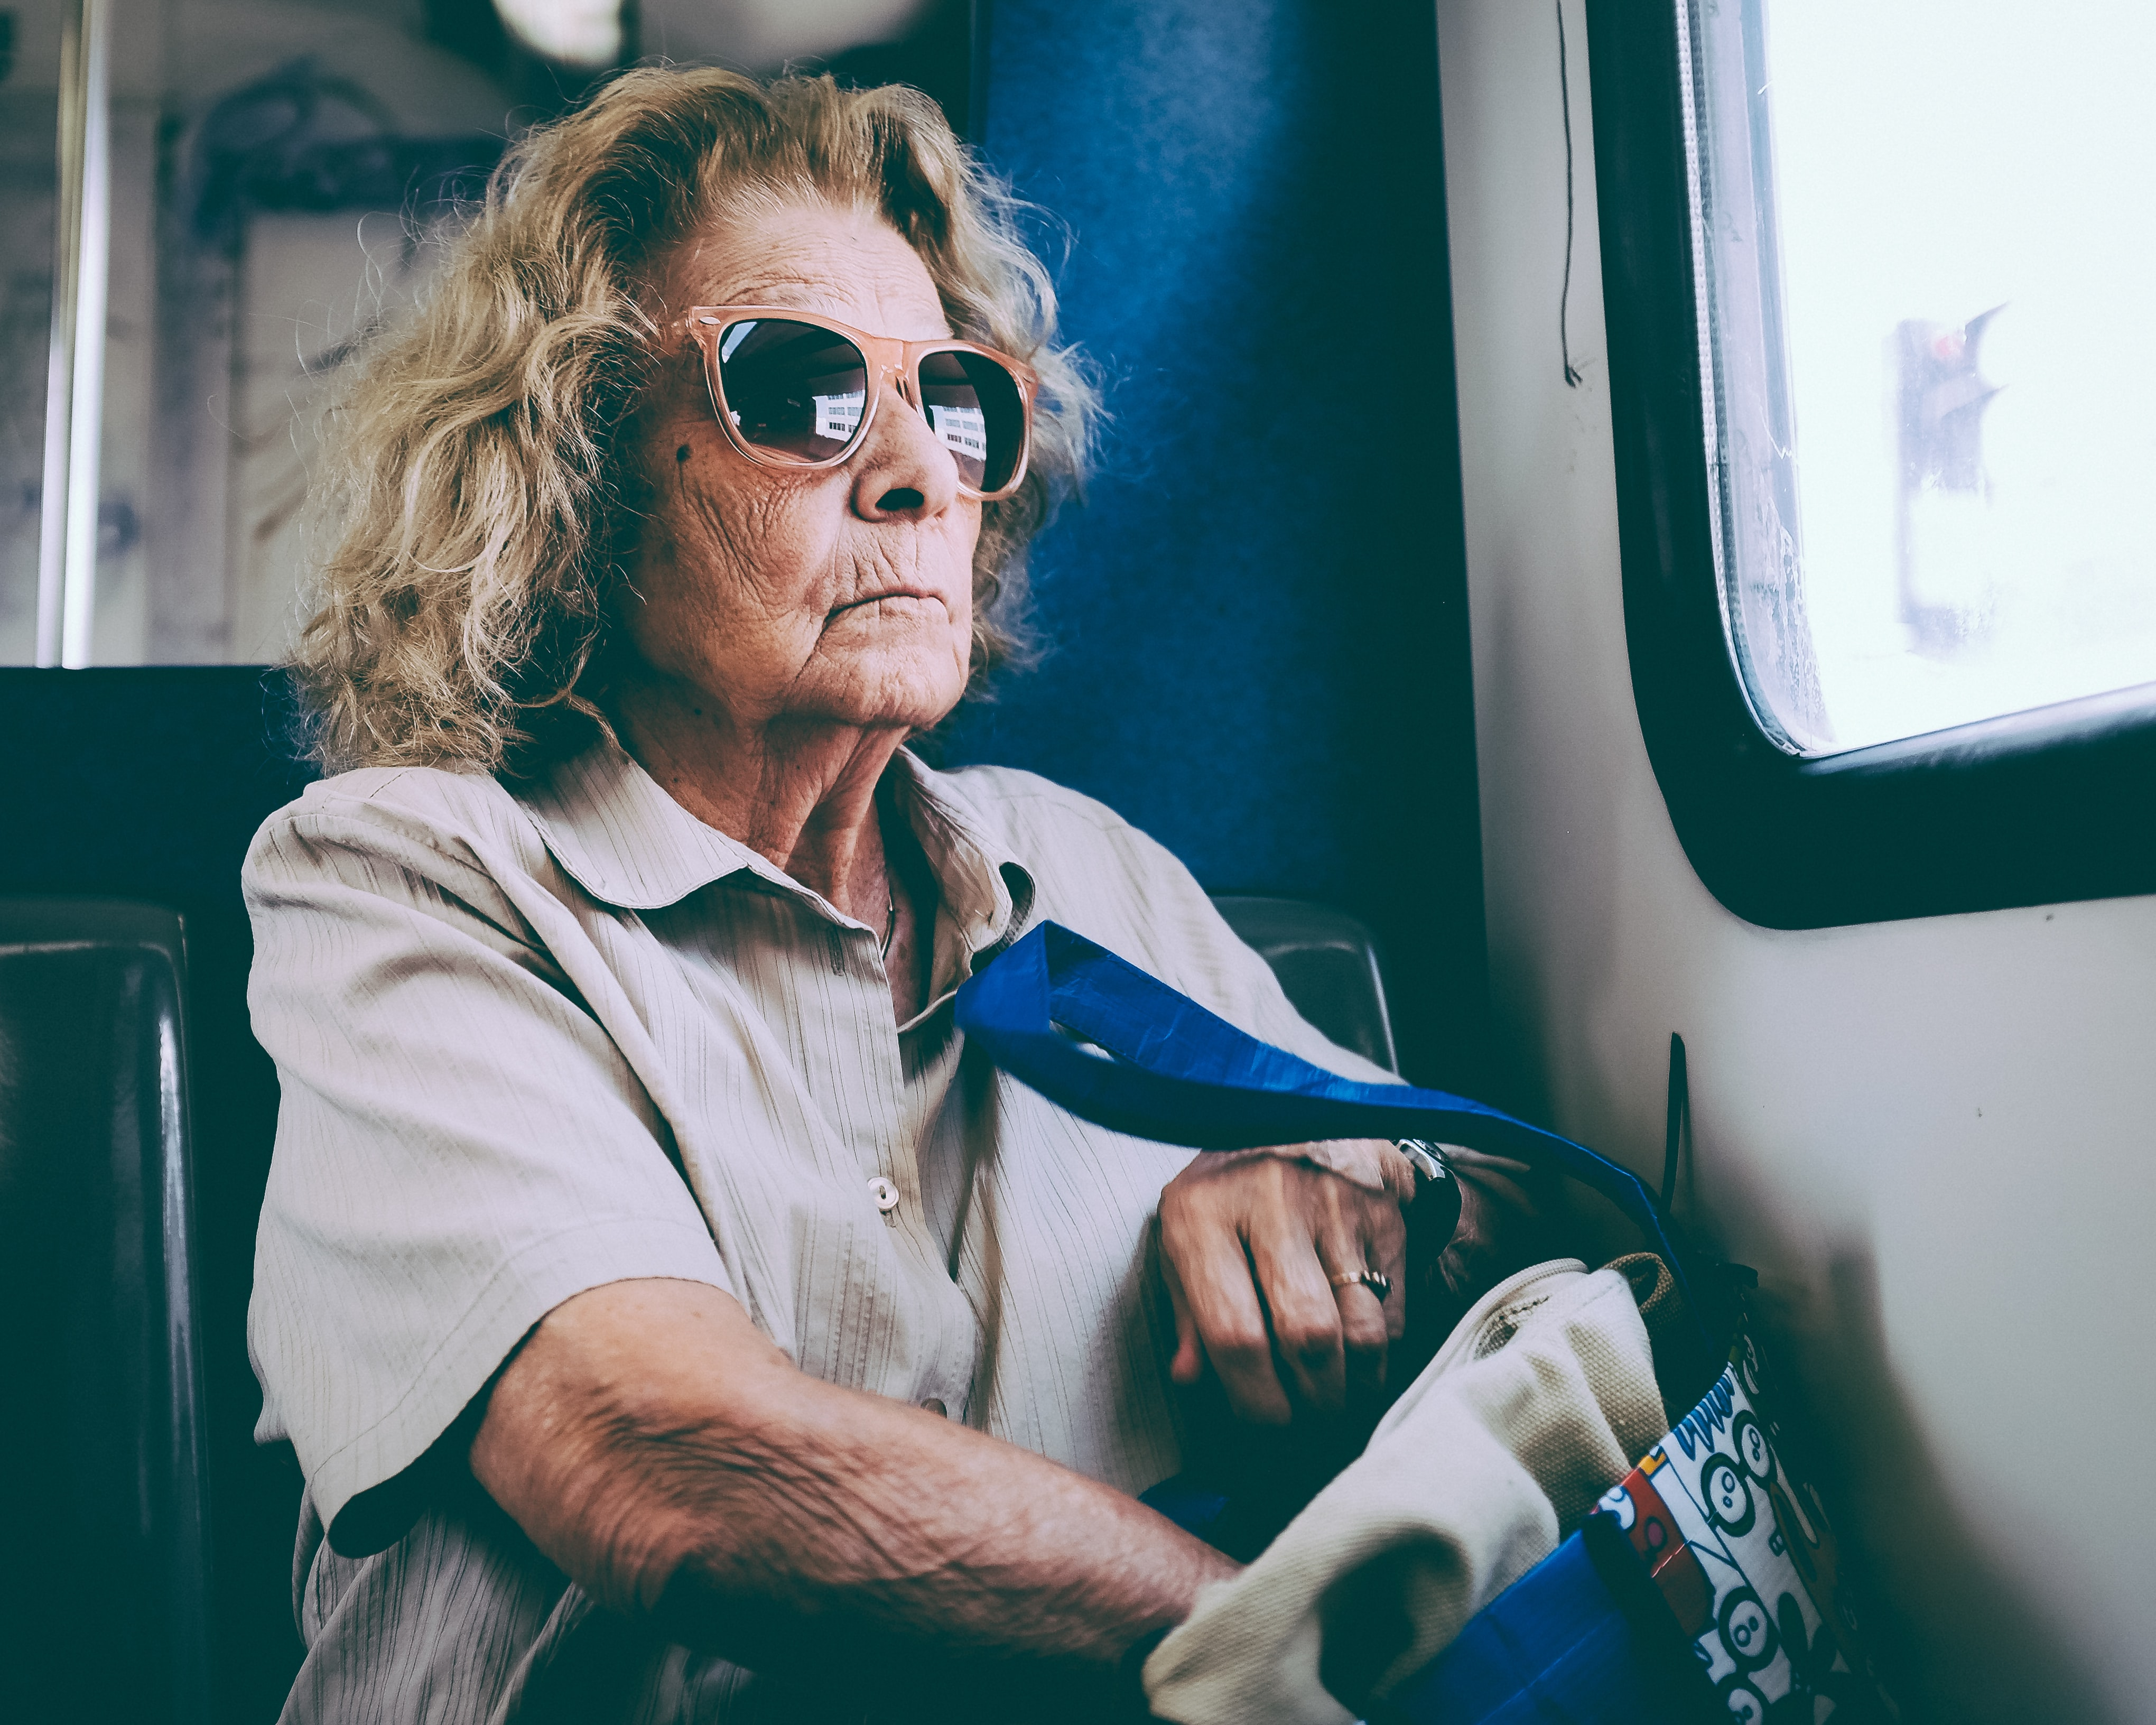 An older woman sitting on a bus.